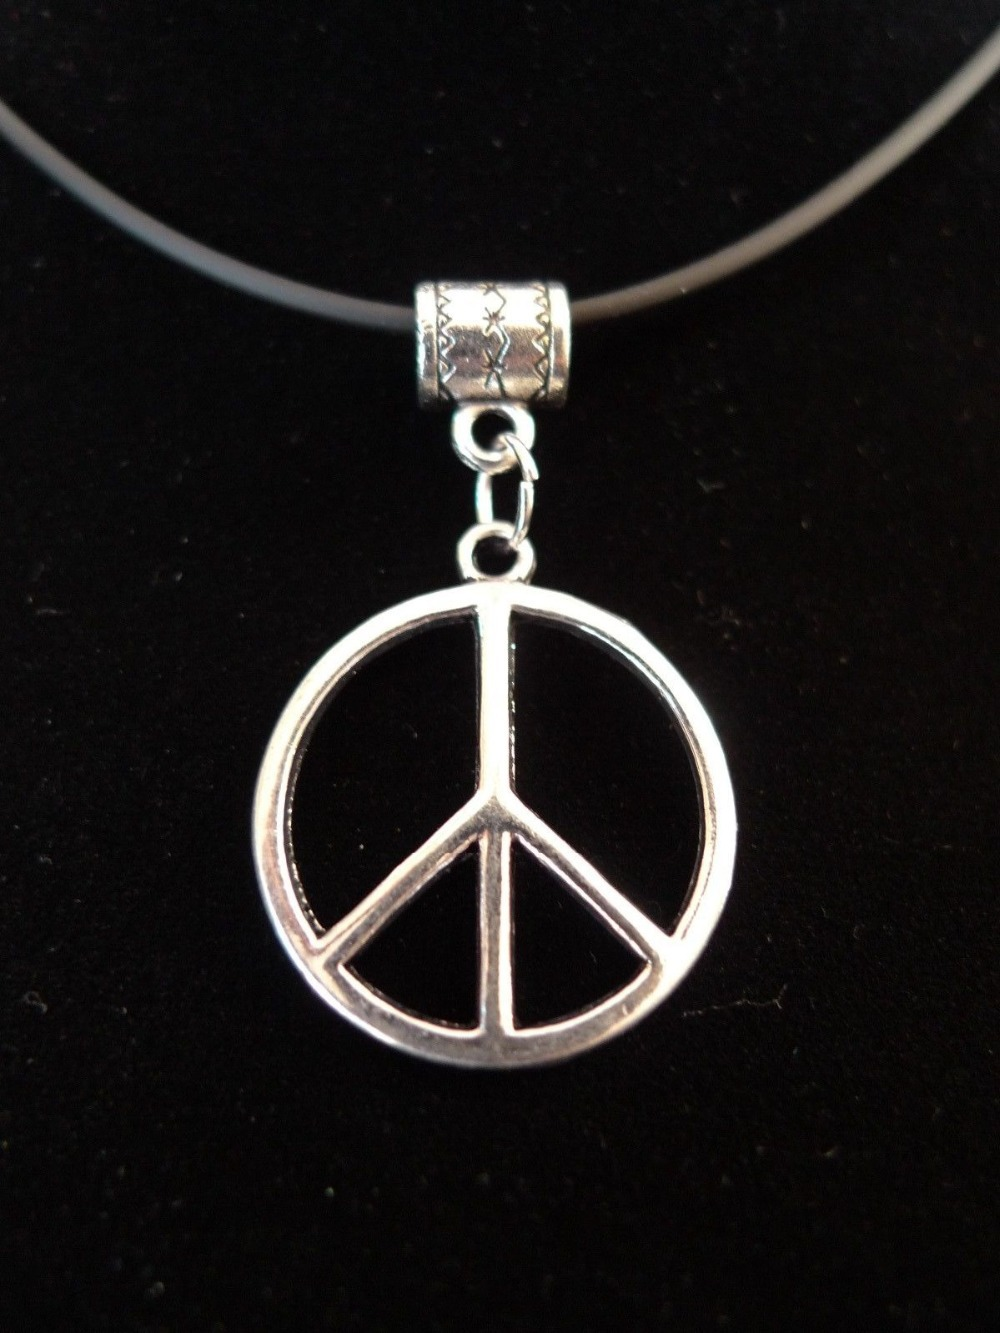 Aliexpress buy 100pcs tibetan silver alloy round peace aliexpress buy 100pcs tibetan silver alloy round peace symbol sign fashion pendant 40 x 24 mm dz1235 from reliable pendant cherry suppliers on first buycottarizona Gallery